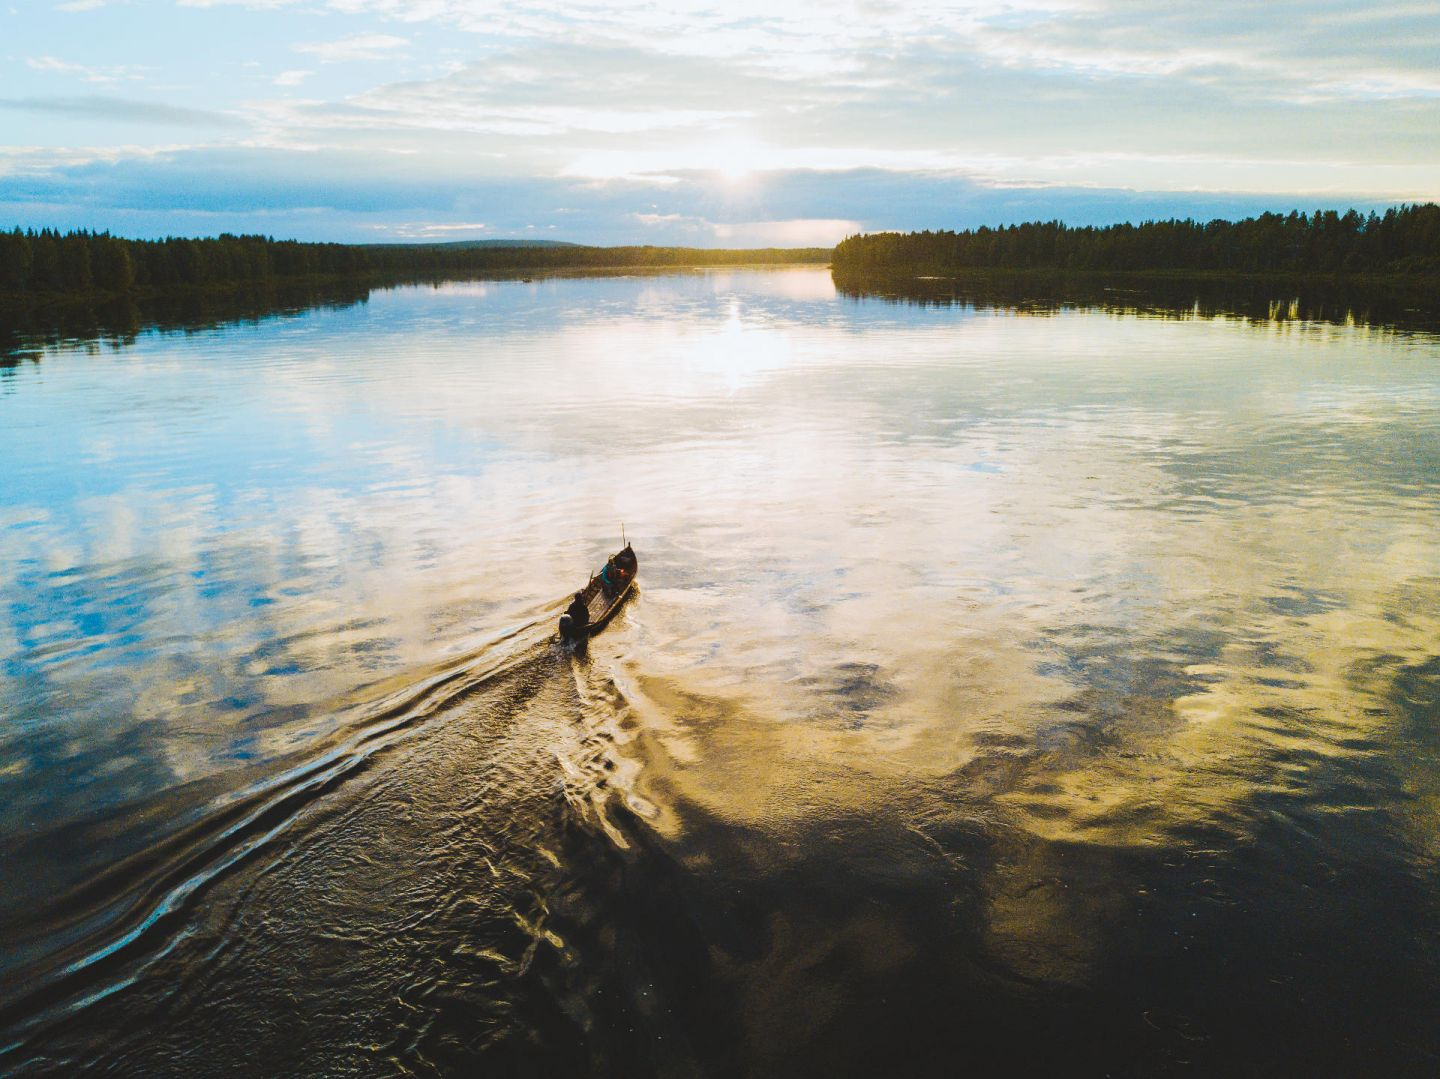 Aerial of fishing rowboat in Pello, Finland in summer